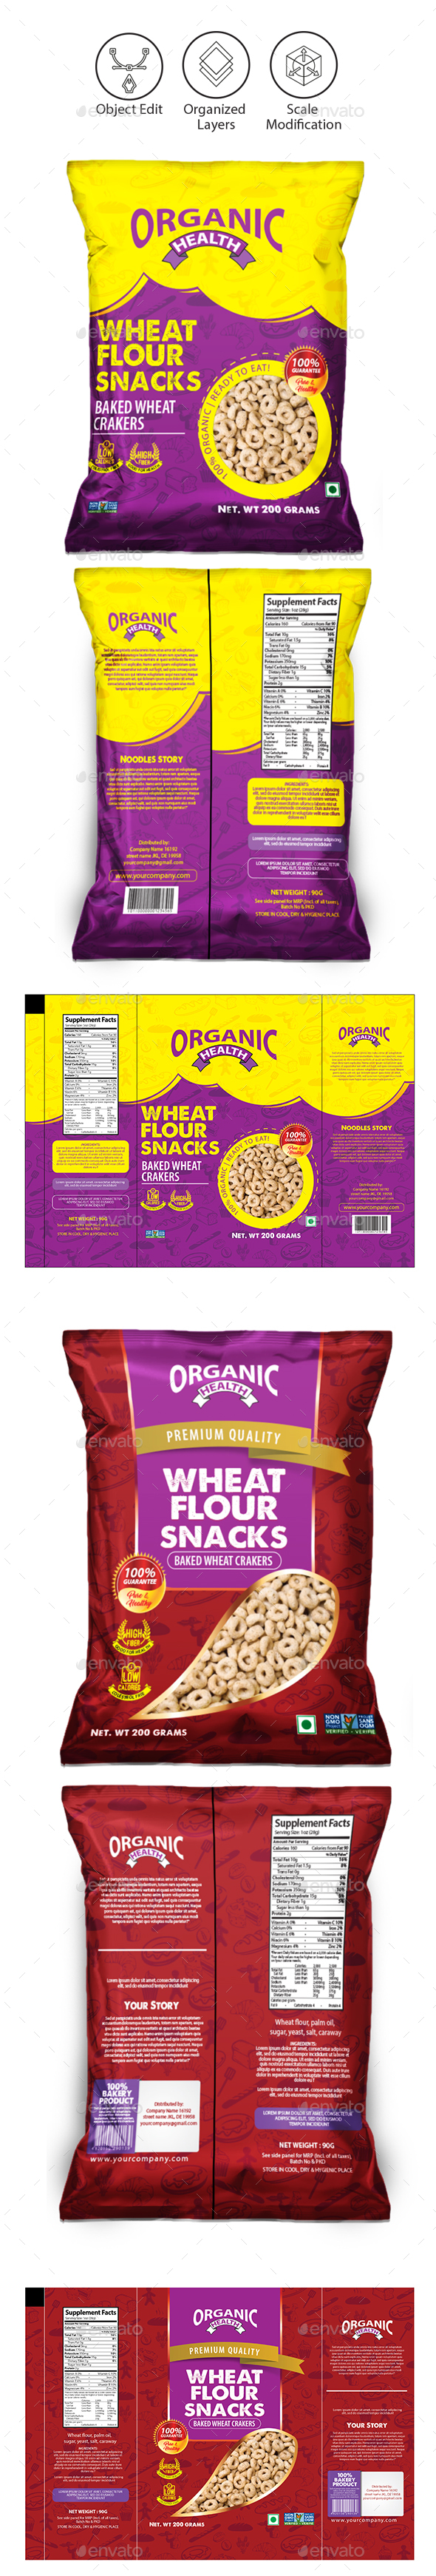 Snacks Packaging Template - Packaging Print Templates